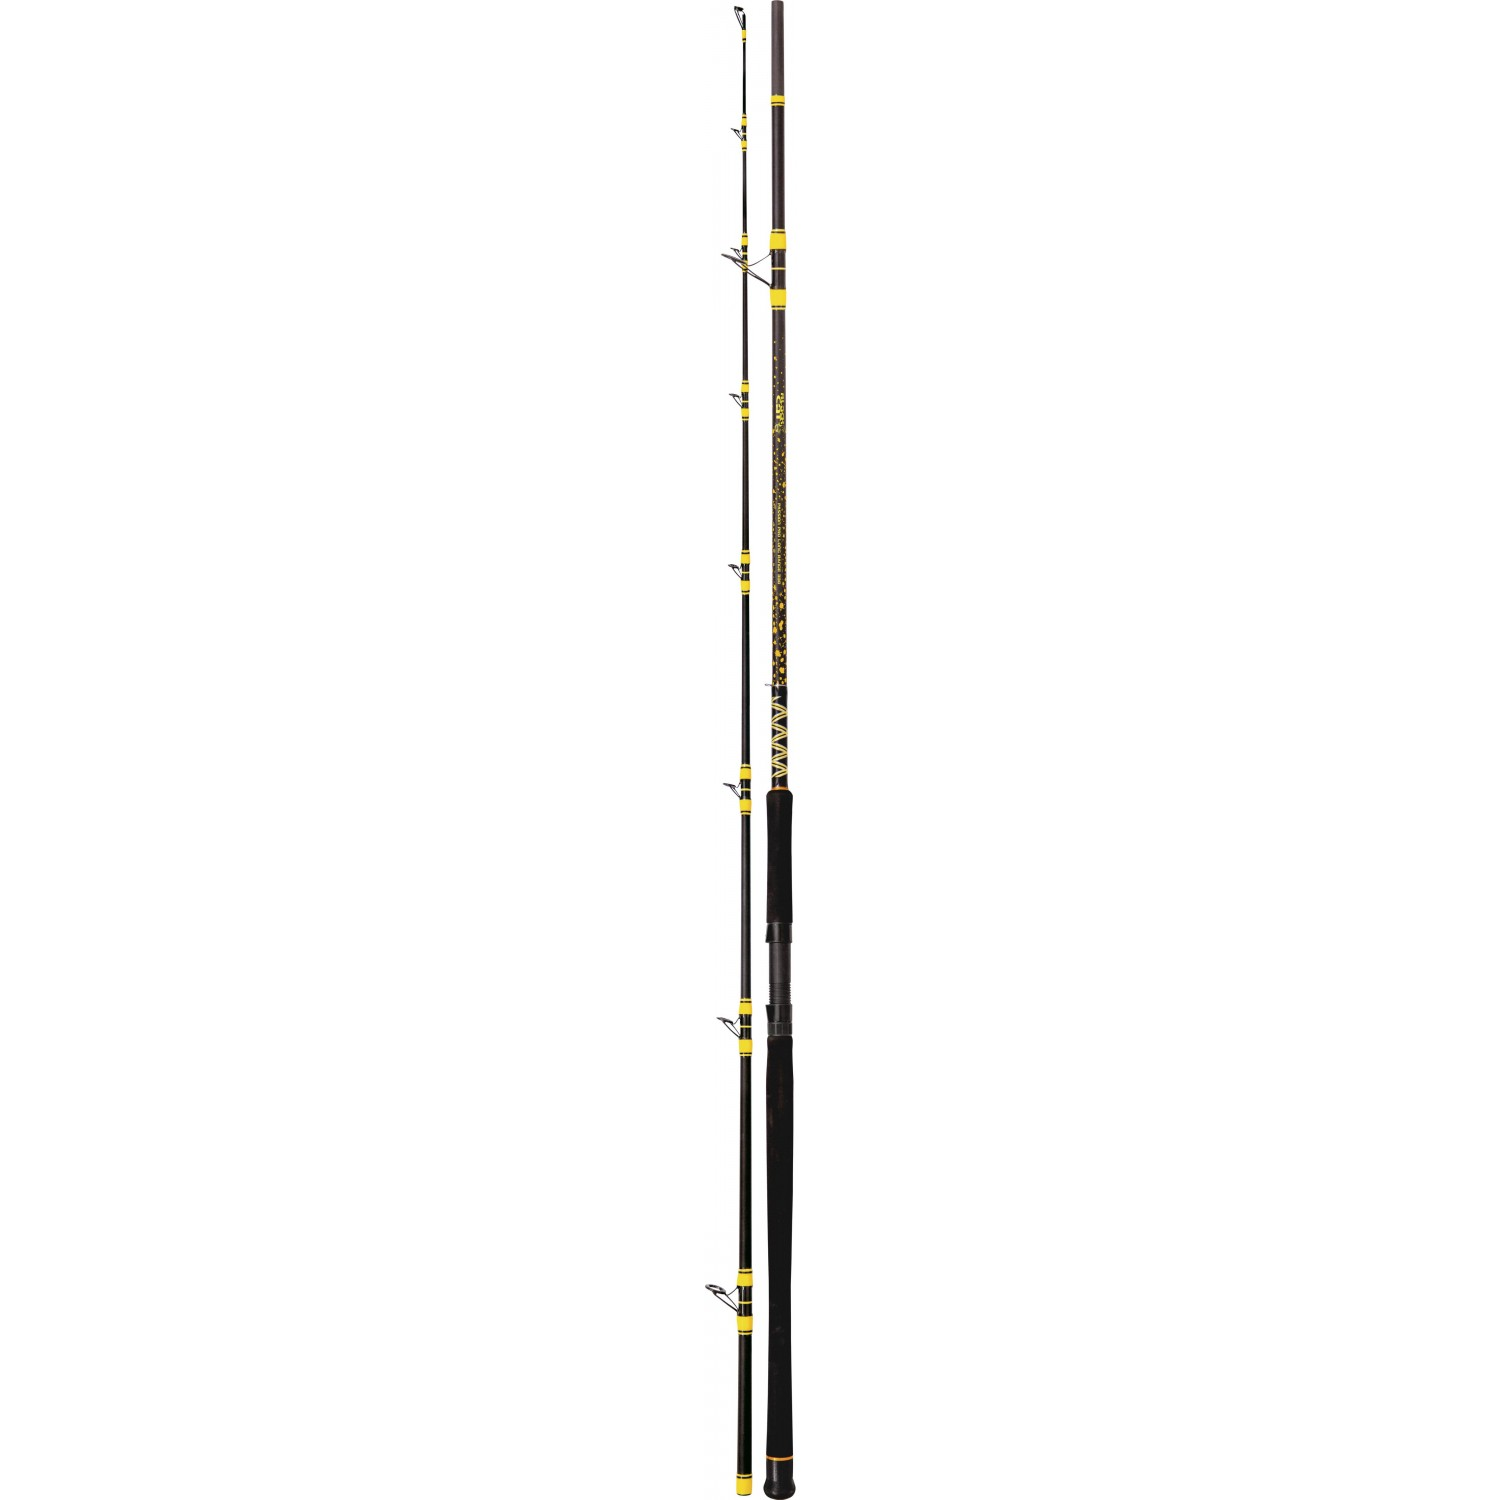 Rhino Black Cat Passion Pro DX Long Range, 3.30m, 300-600g